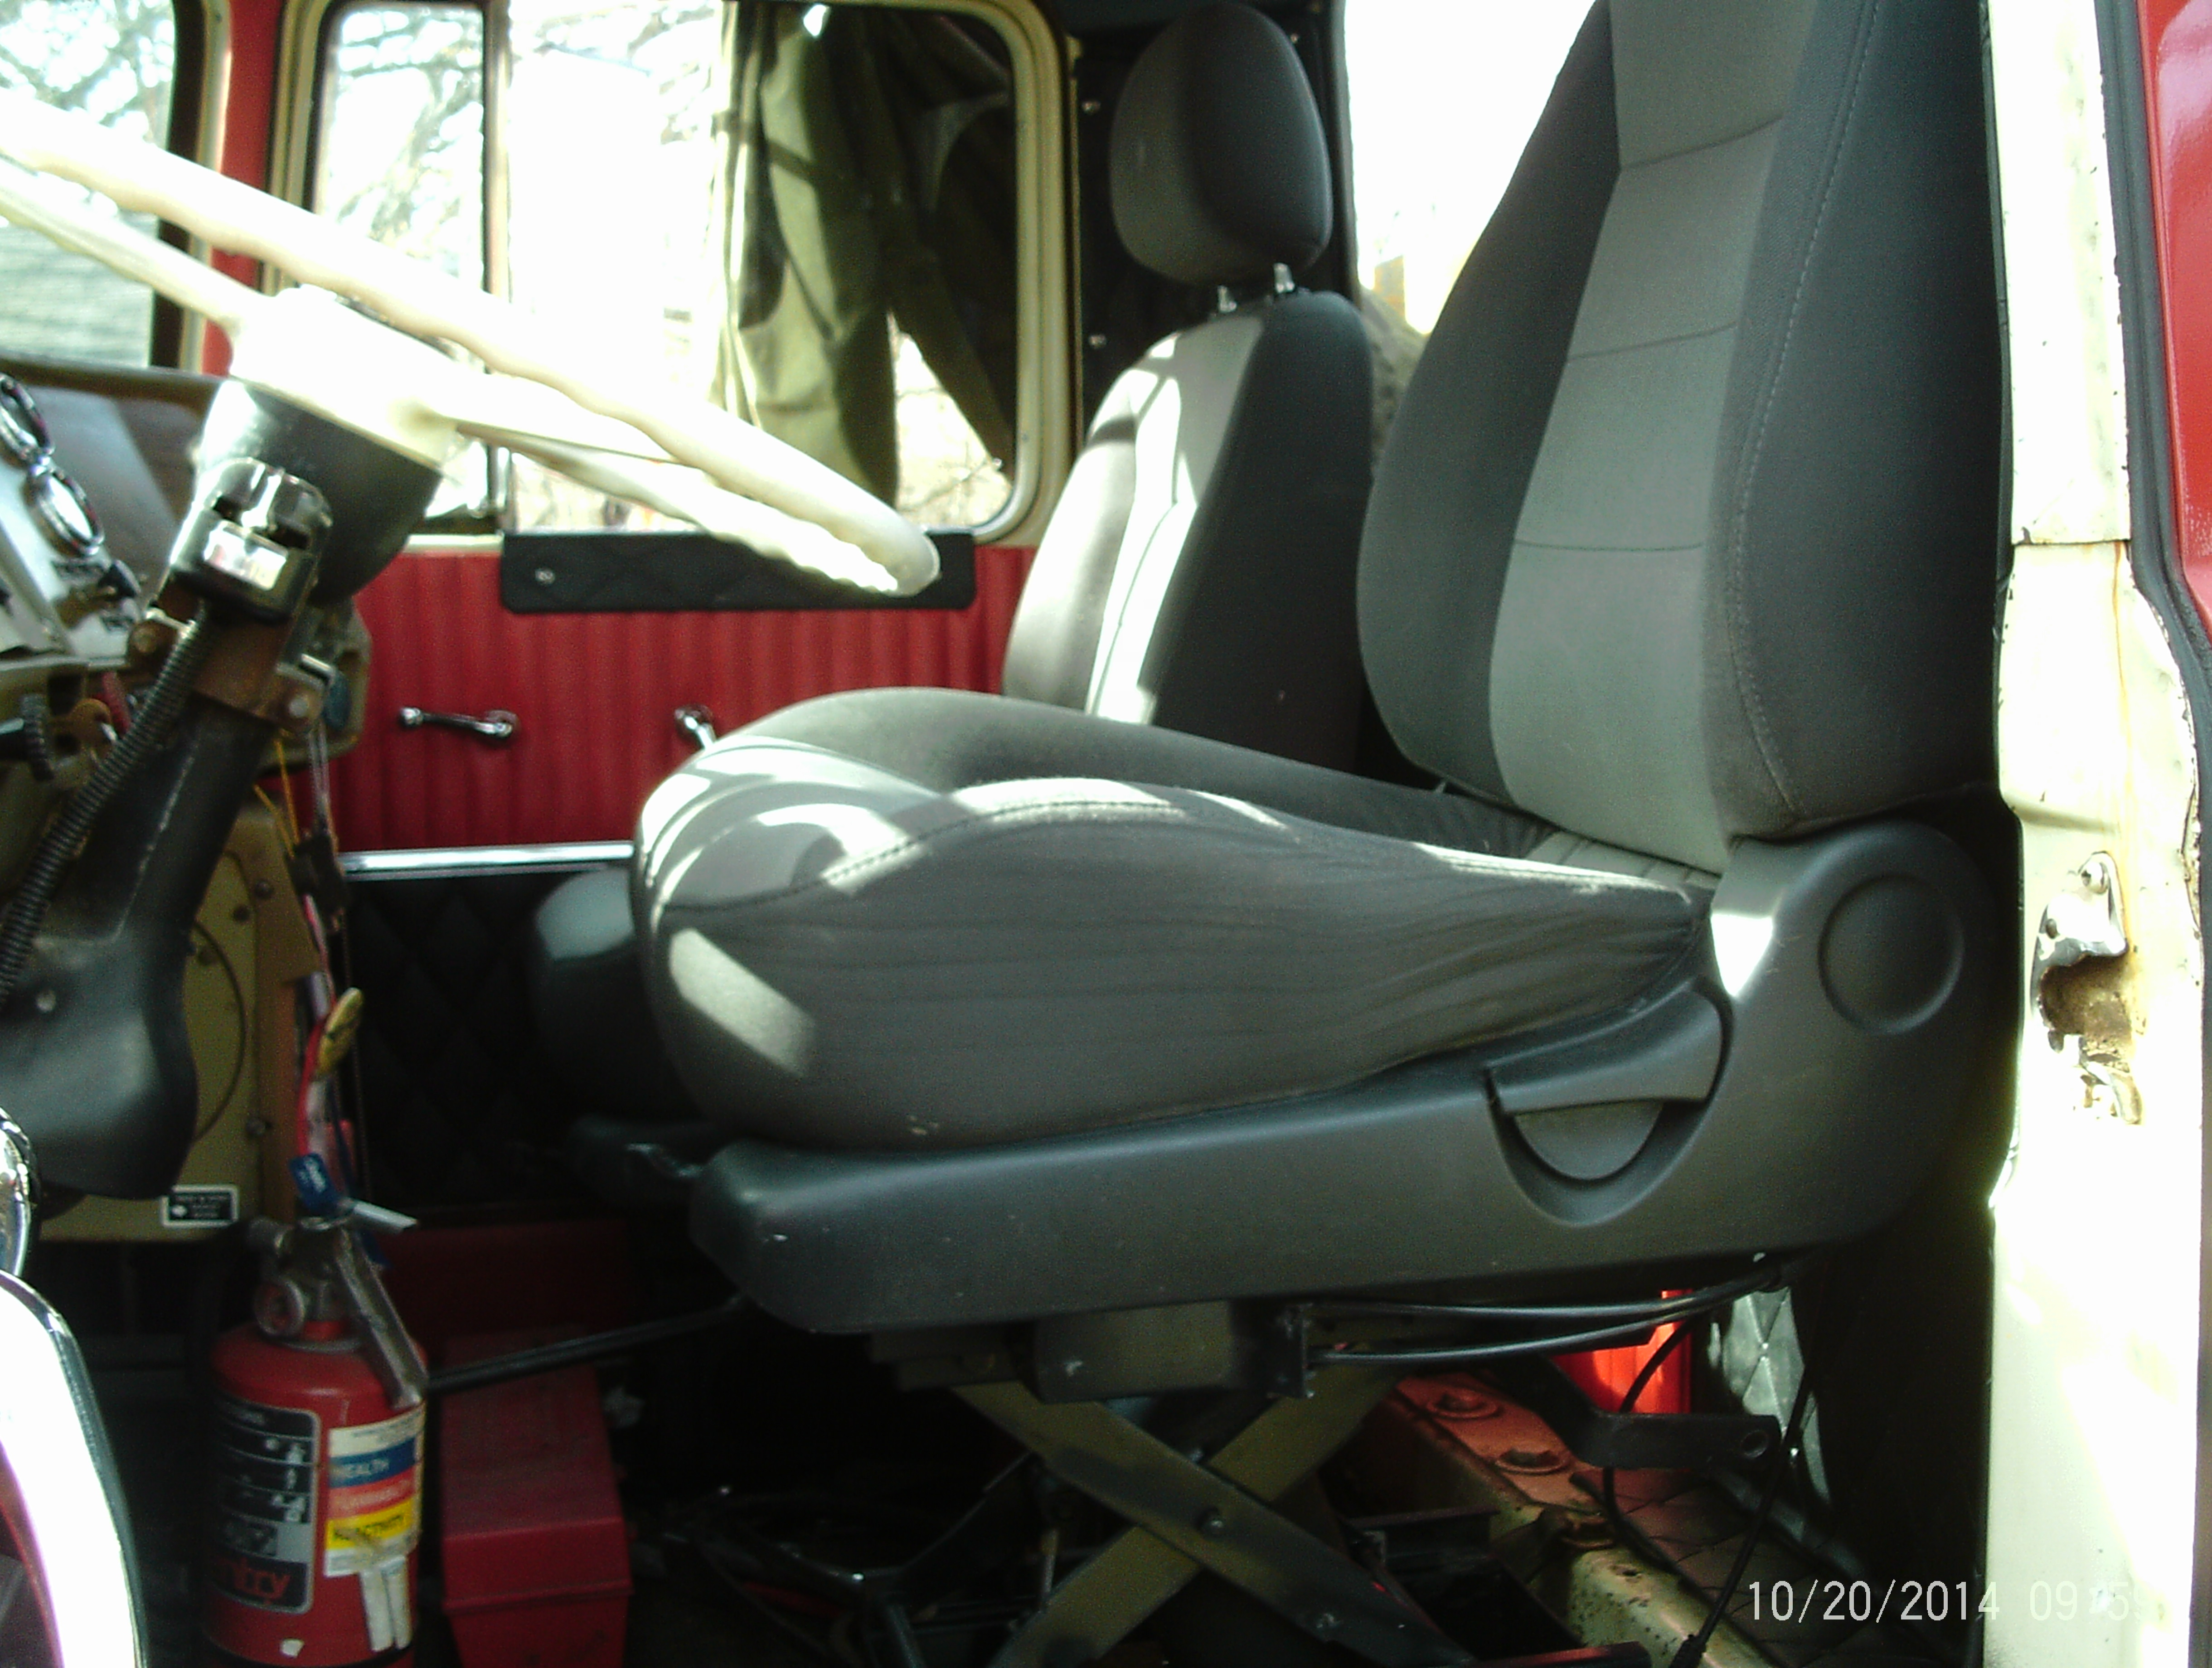 going to buy a new driver's seat - Exterior, Cab